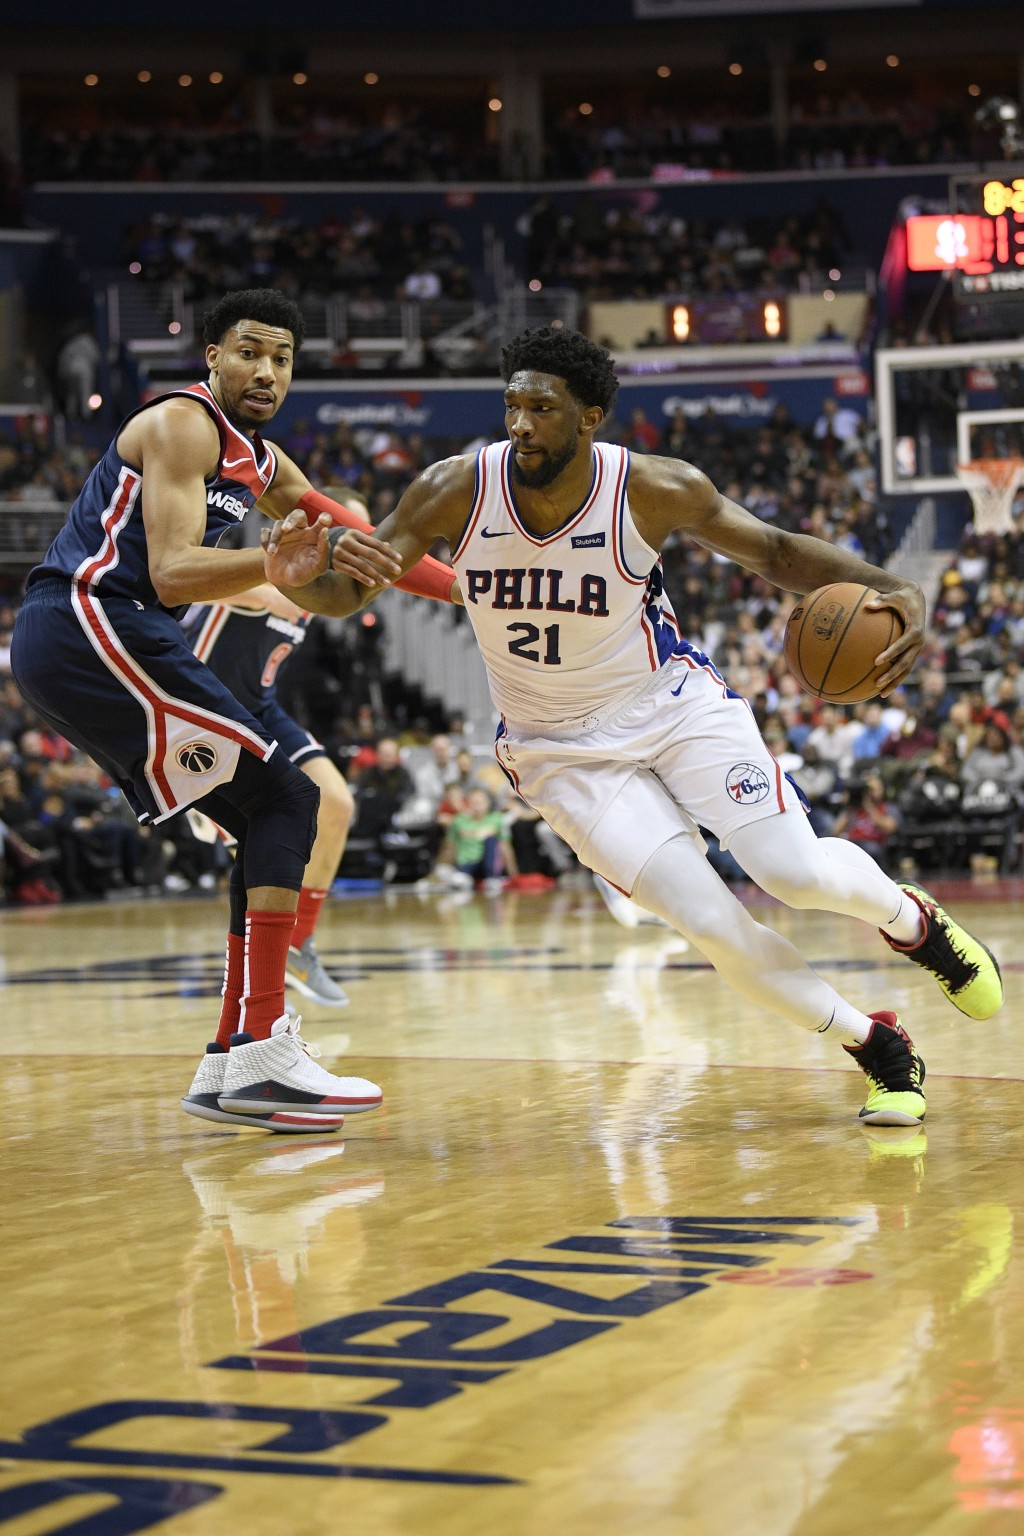 Philadelphia 76ers center Joel Embiid (21) dribbles the ball against Washington Wizards forward Otto Porter Jr., left, during the first half of an NBA